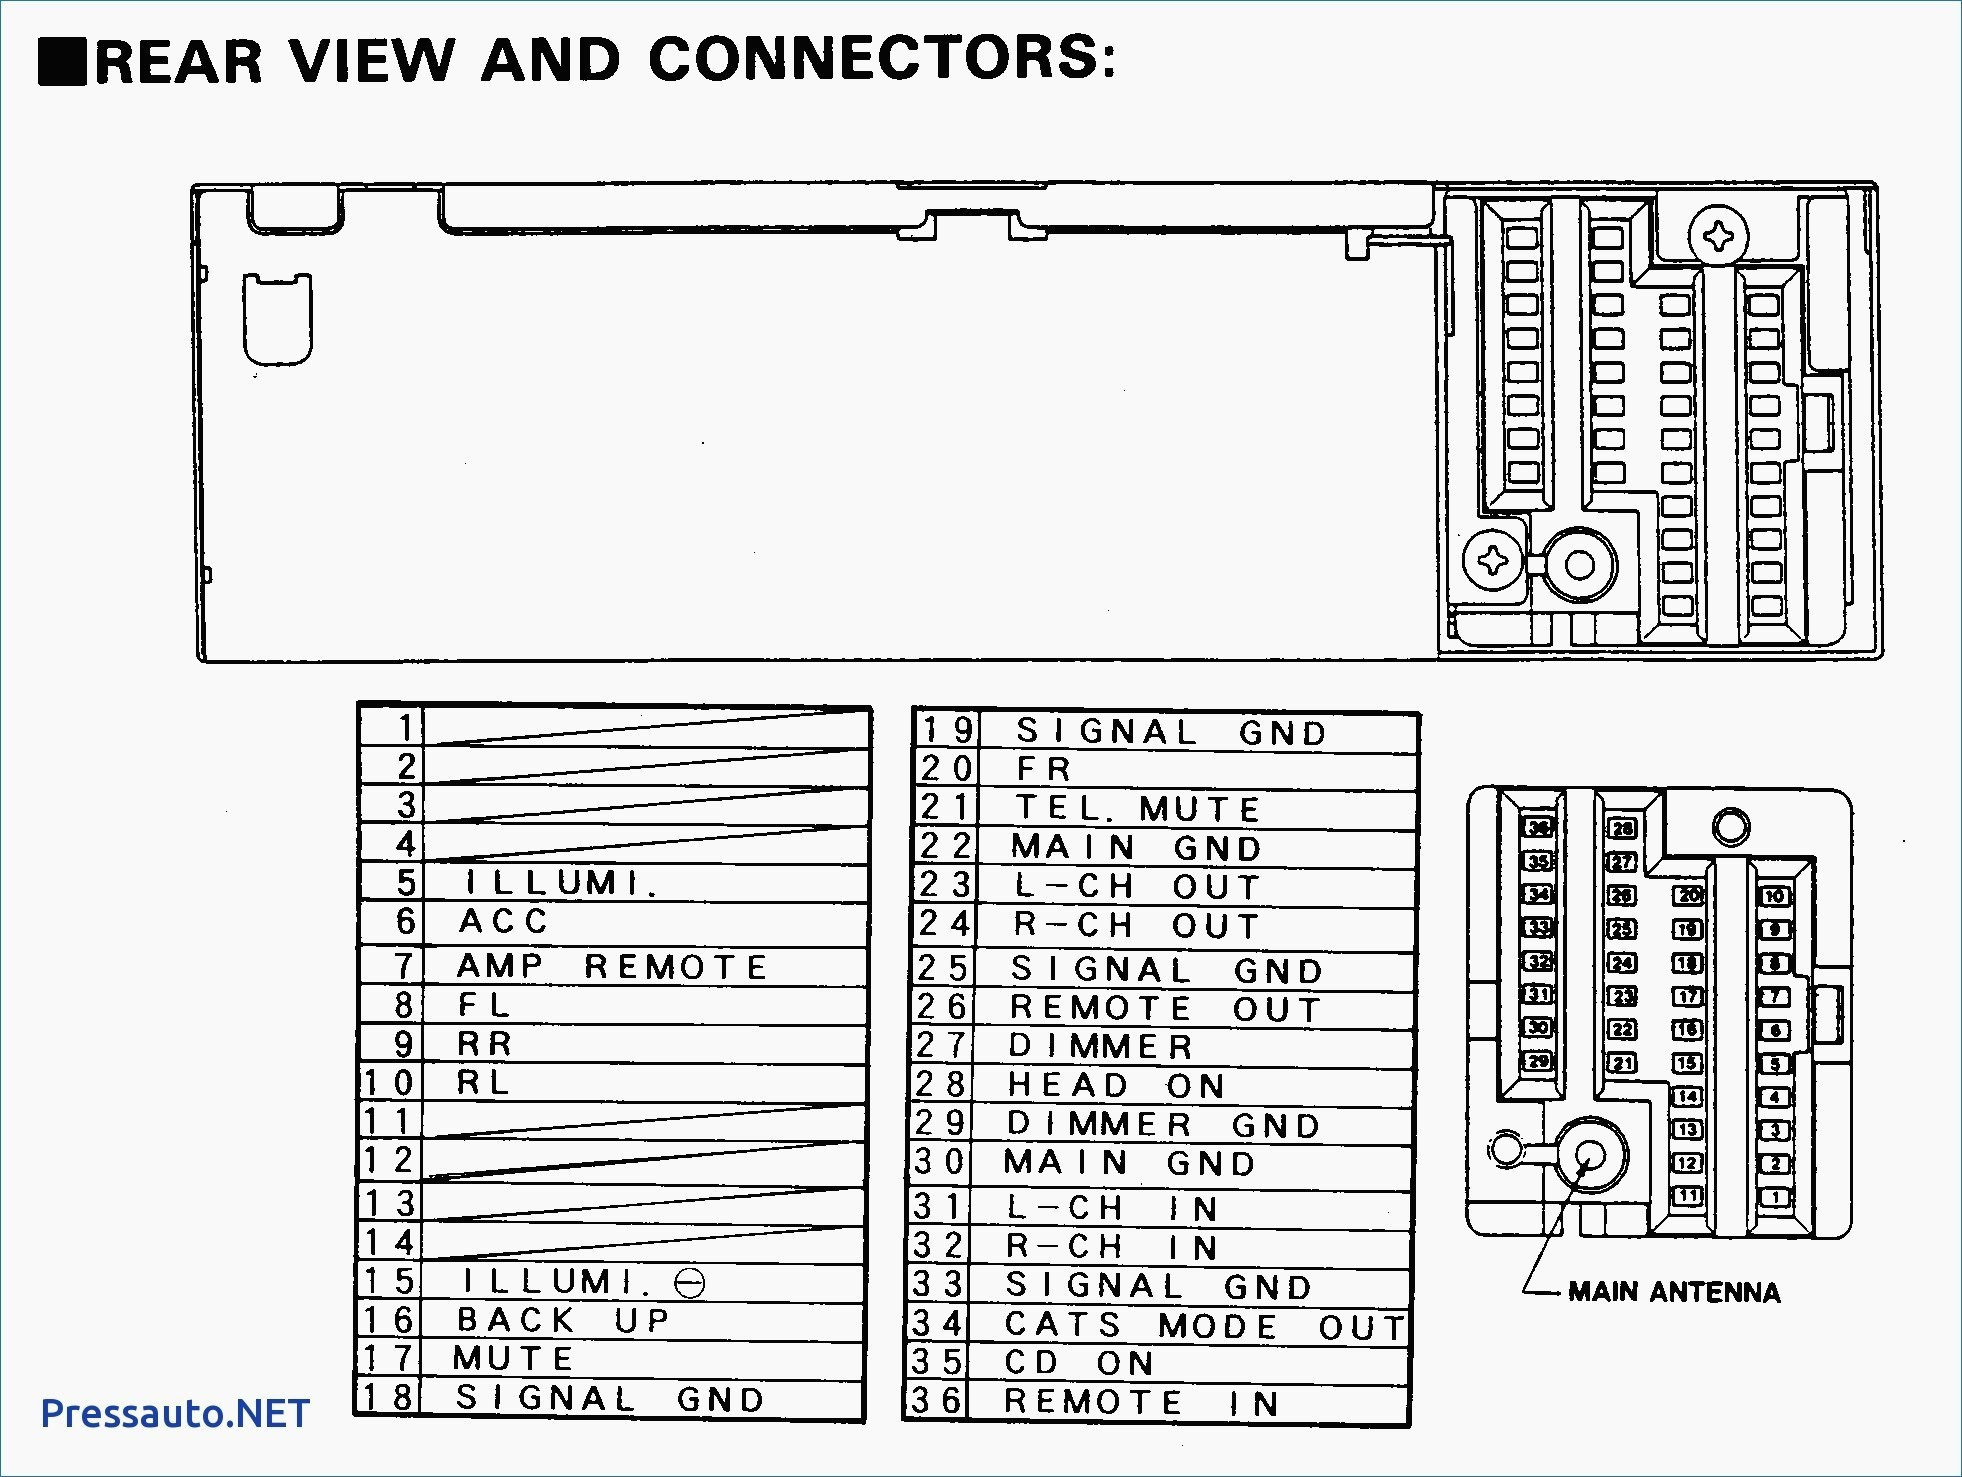 Wiring Diagram Booster Amplifier Inspirationa Pioneer Car Stereo